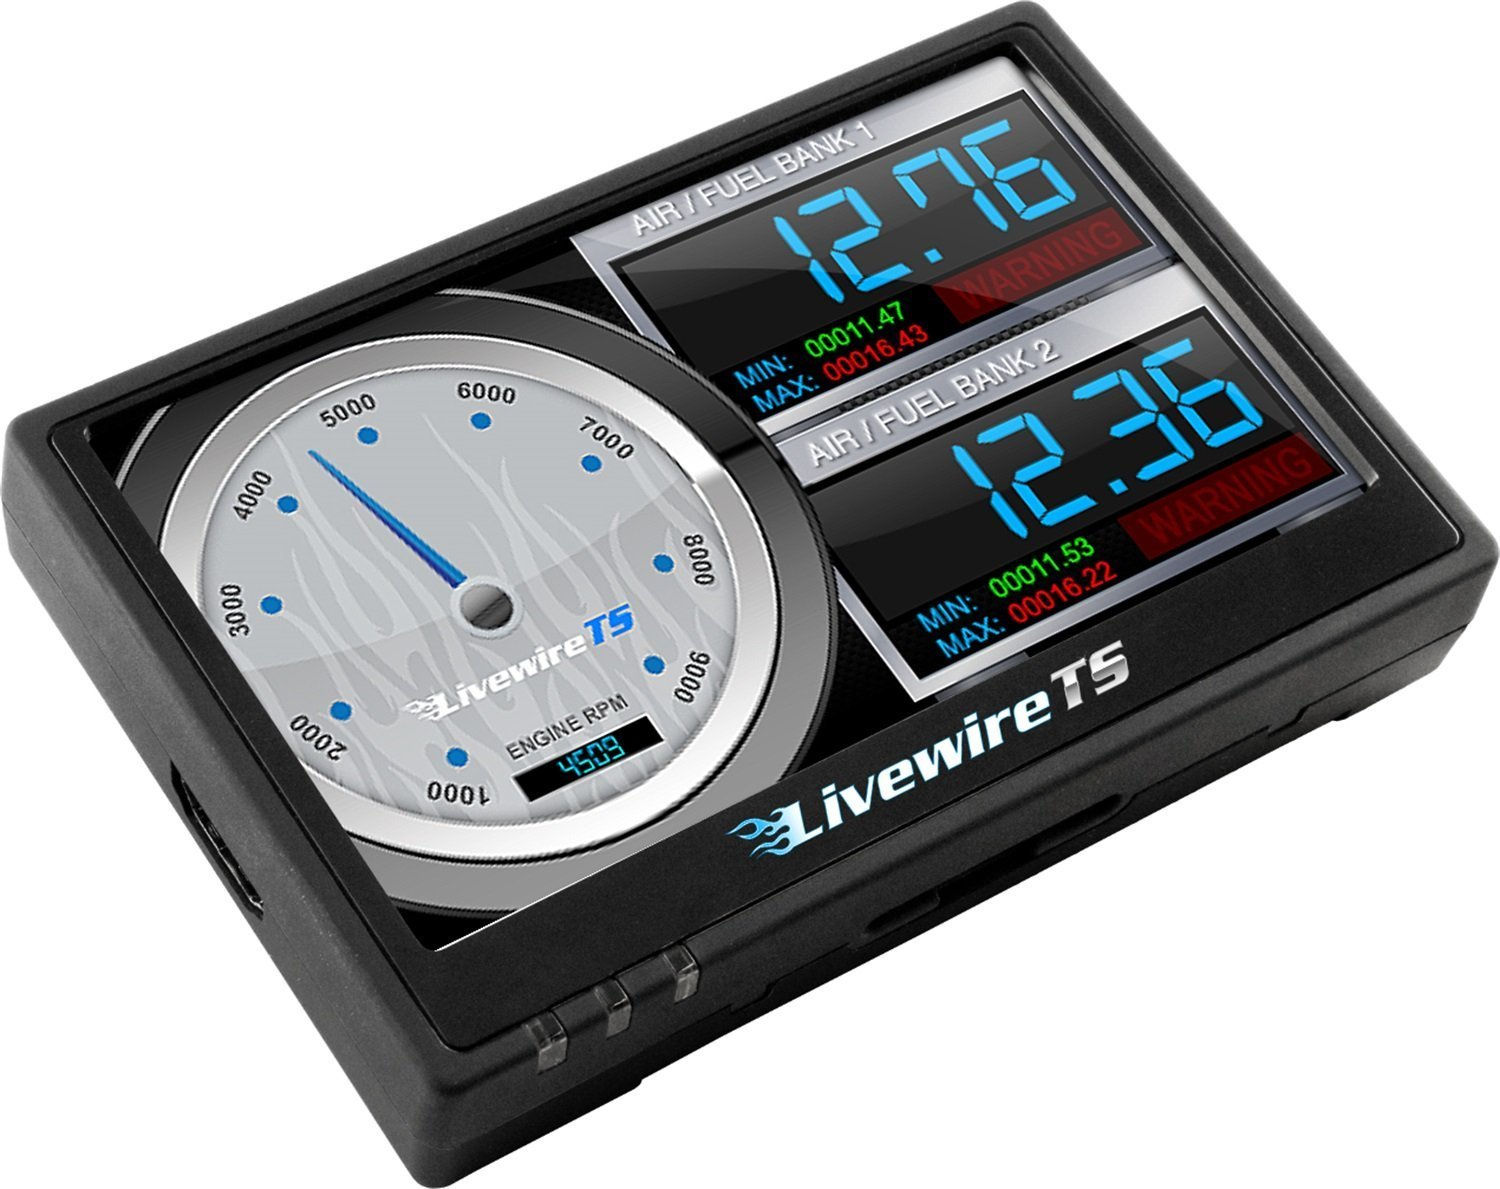 SCT 5015P Livewire TS+ Performance Ford Programmer/Monitor